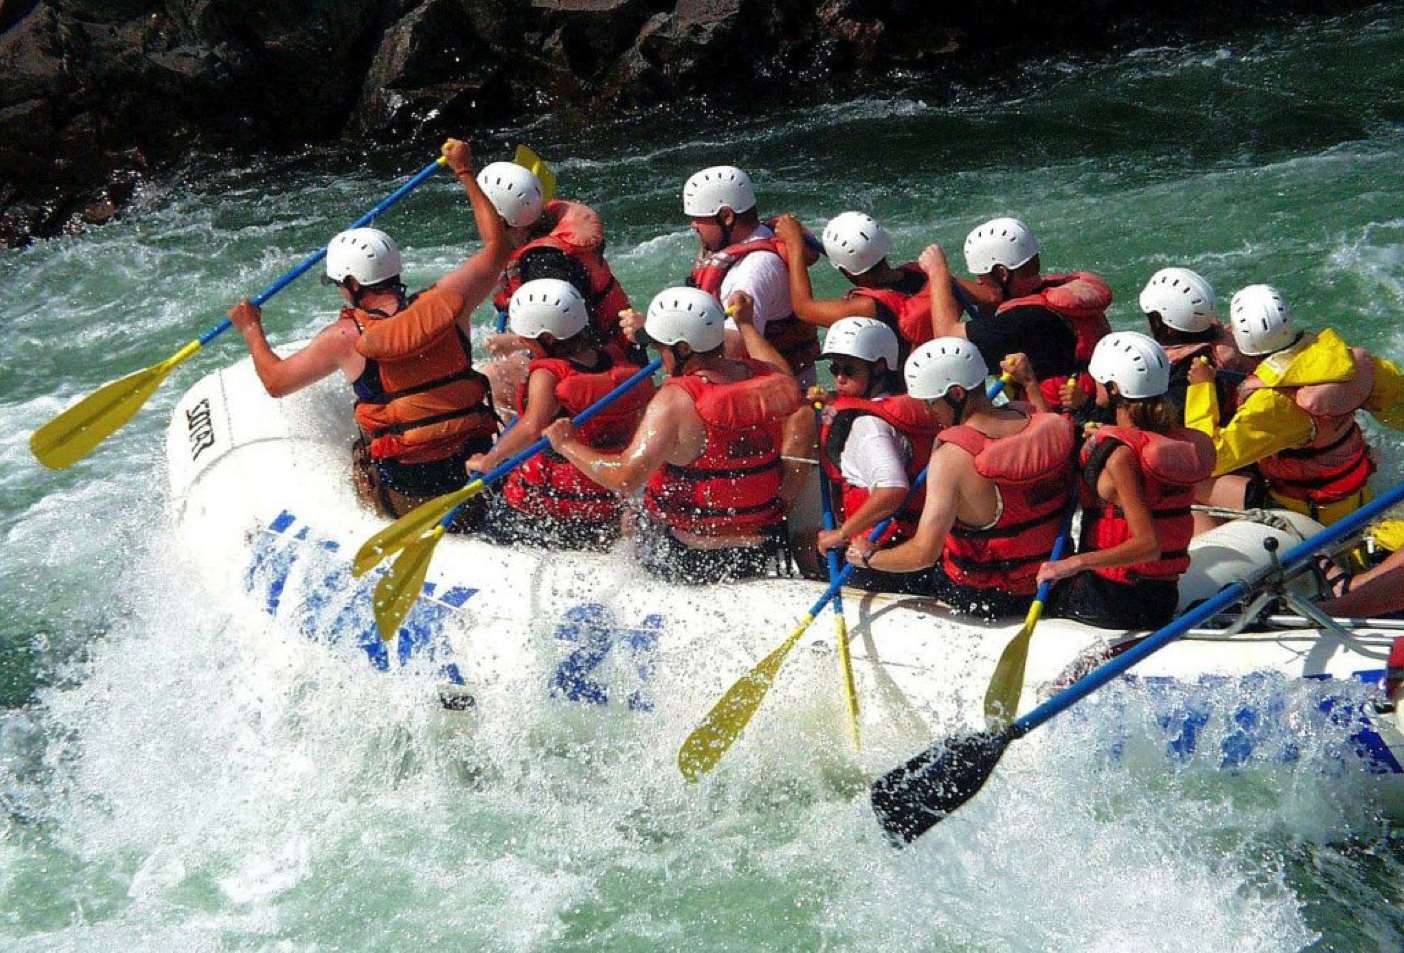 Whitewater rafting in China